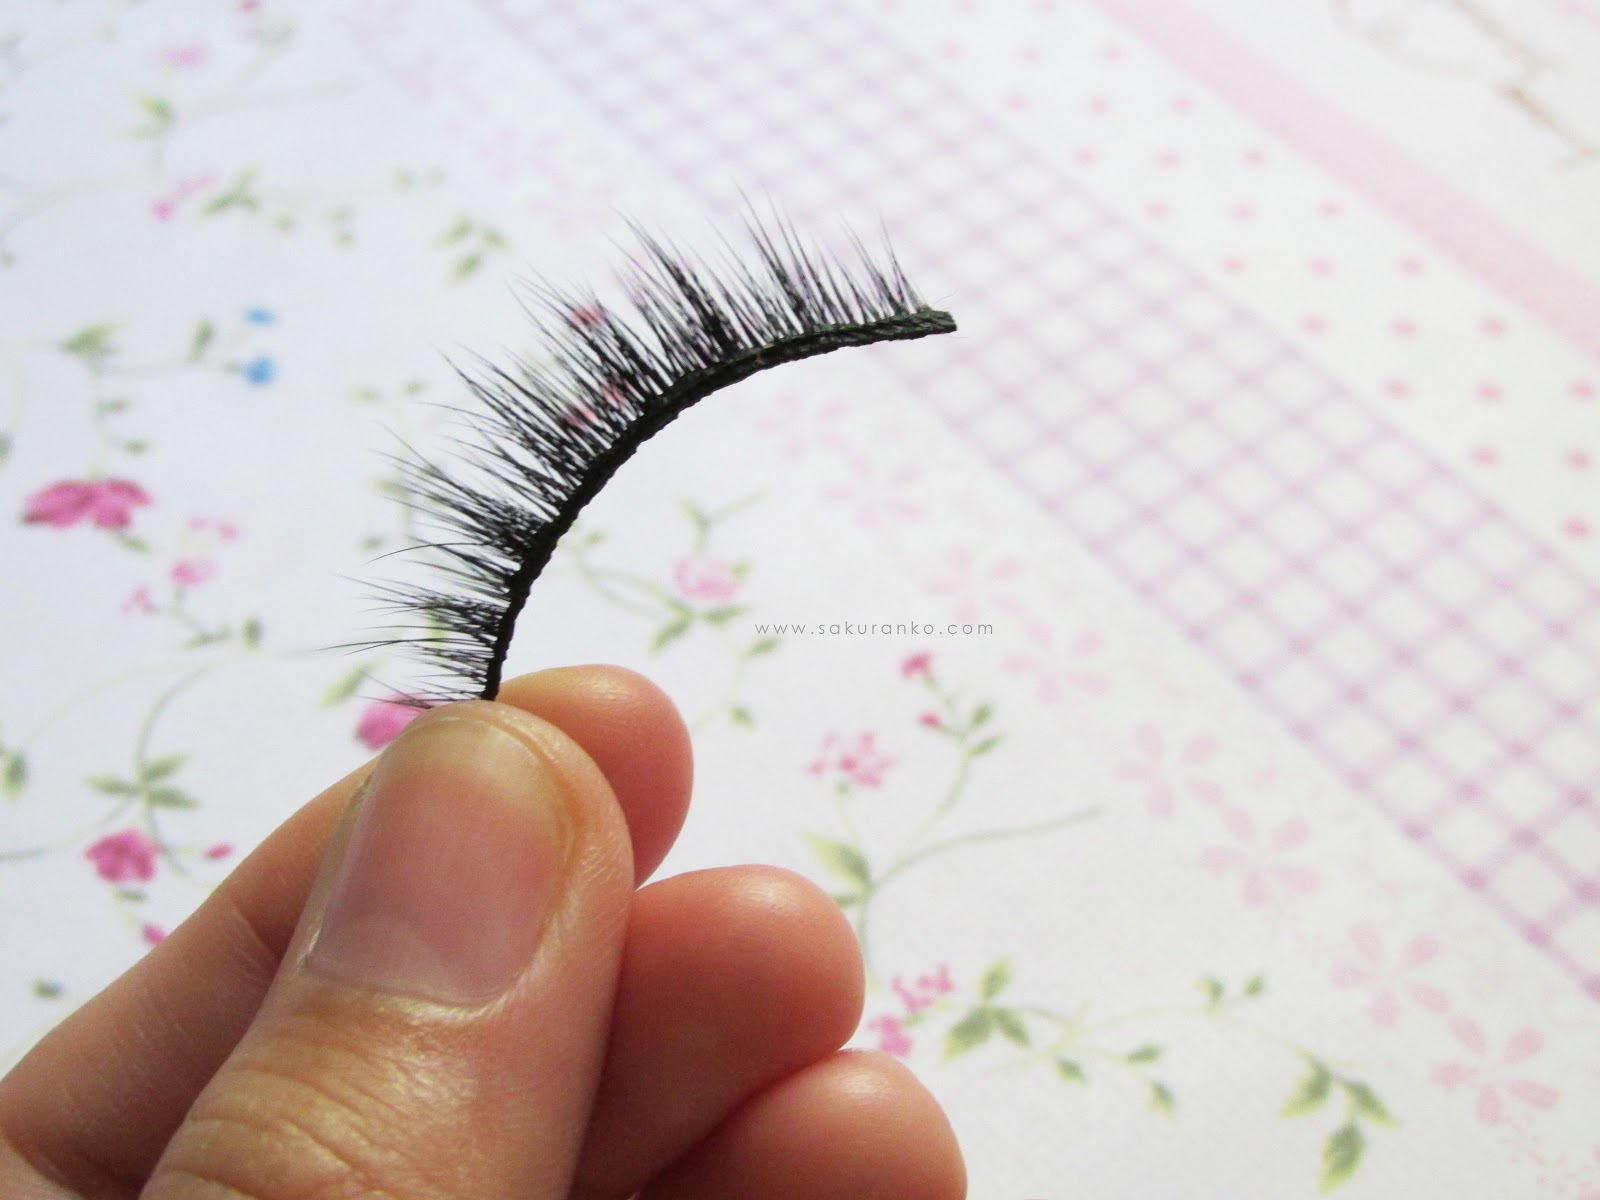 b0f9057cb09 Quality: The fiber is very lightweight but these false eyelashes are more  short and less thick than the Gala Eyelashes. The fiber looks super natural  and is ...